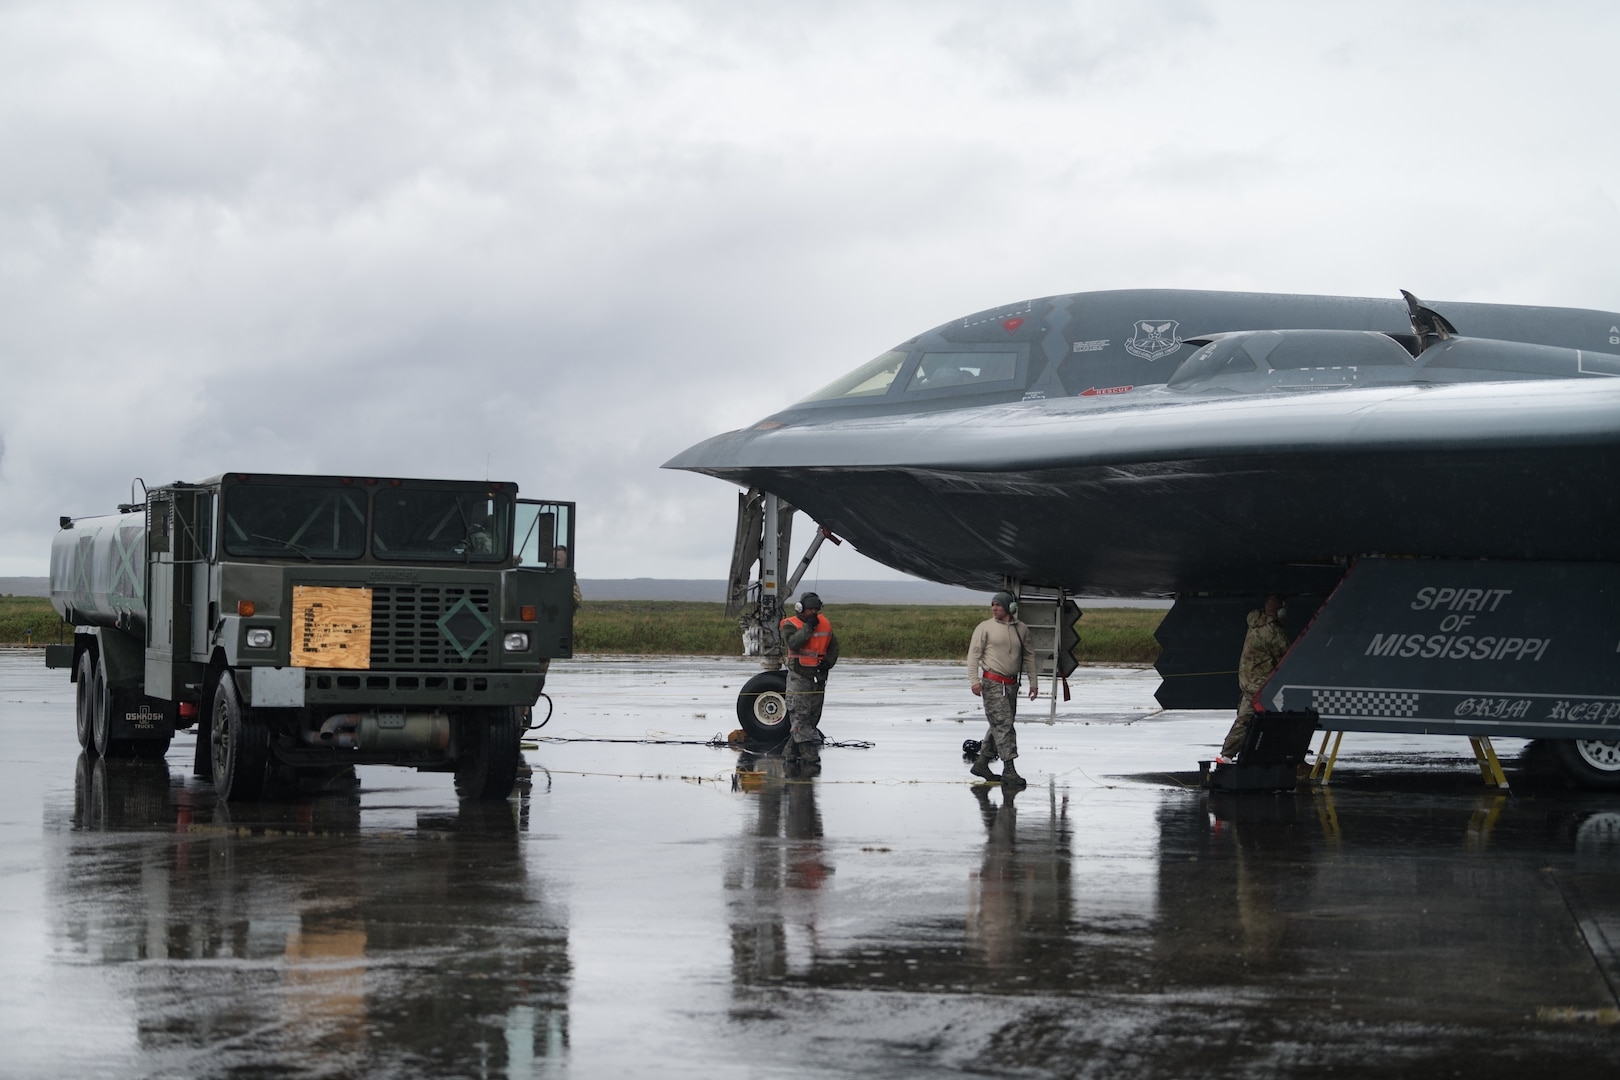 509th Logistics Readiness Squadron fuel distribution operators from Whiteman Air Force Base, Missouri conduct a hot-pit refueling on a B-2 Spirit Bomber at Naval Air Station Keflavik, Iceland, August 28, 2019. Hot-pit refueling is a method of refueling an aircraft without shutting down the engines. This is the B-2s first time landing in Iceland. Forward locations like Iceland enhance the collective defense capabilities of both the U.S. and NATO allies partners. (U.S. Air Force photo by Senior Airman Thomas Barley)